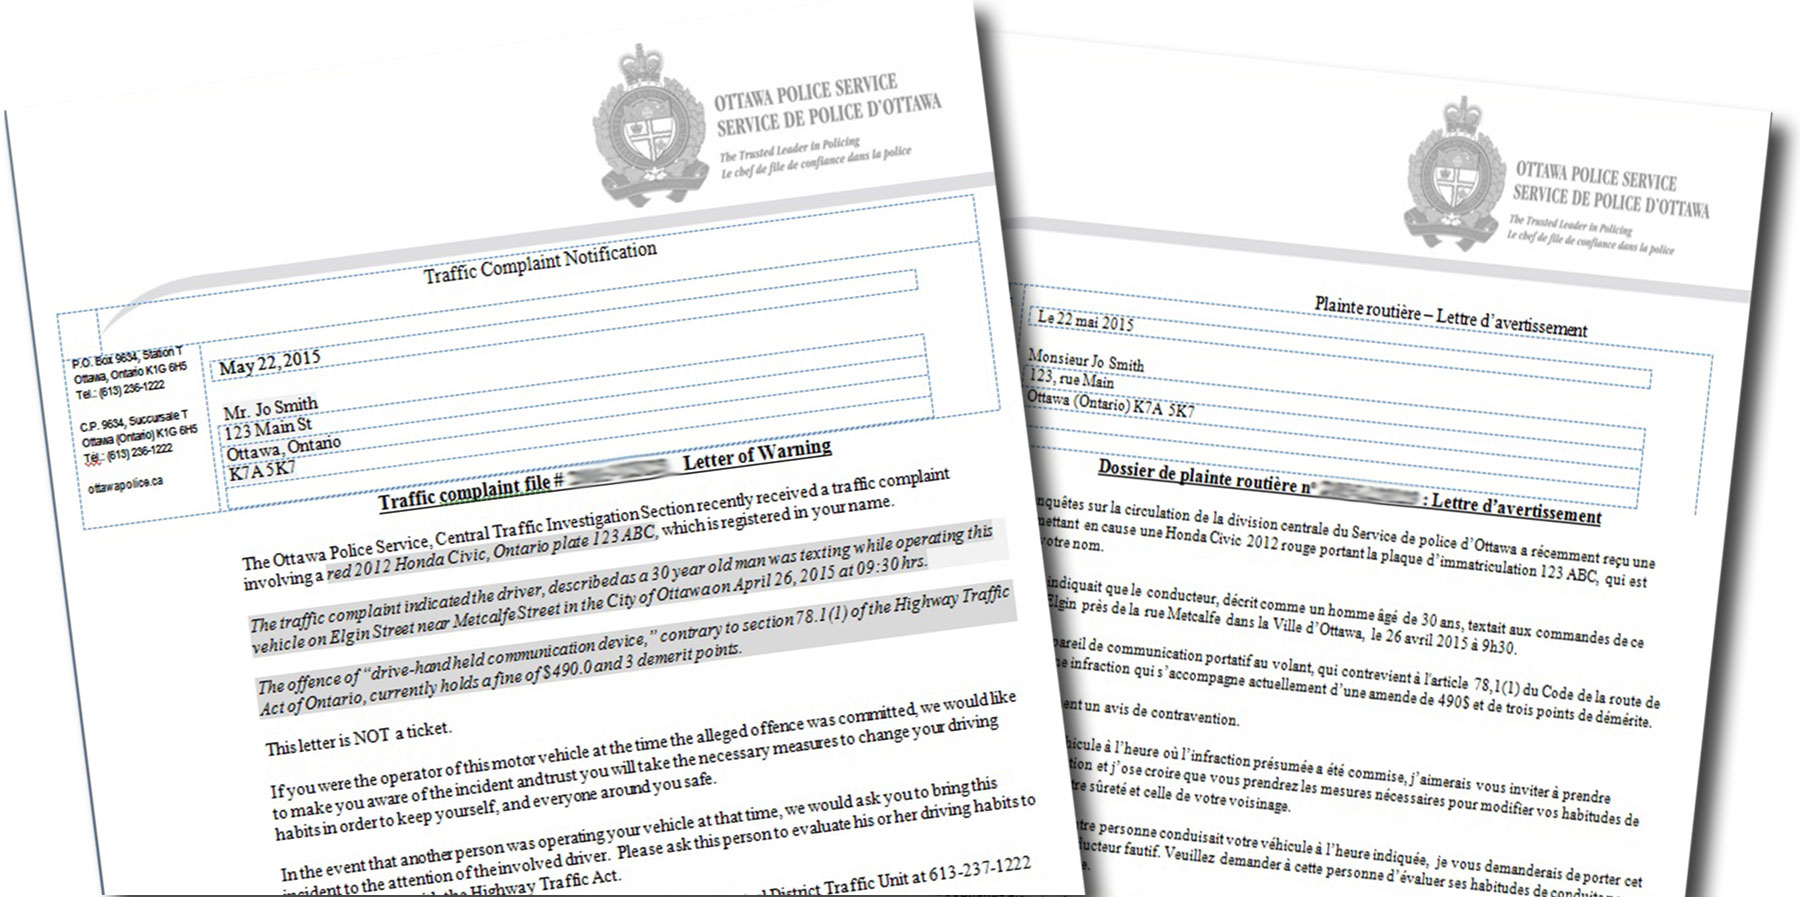 Traffic complaint letter ottawa police service if youve recently received a traffic complaint warning letter in the mail its because a vehicle registered to you was observed committing a traffic spiritdancerdesigns Gallery